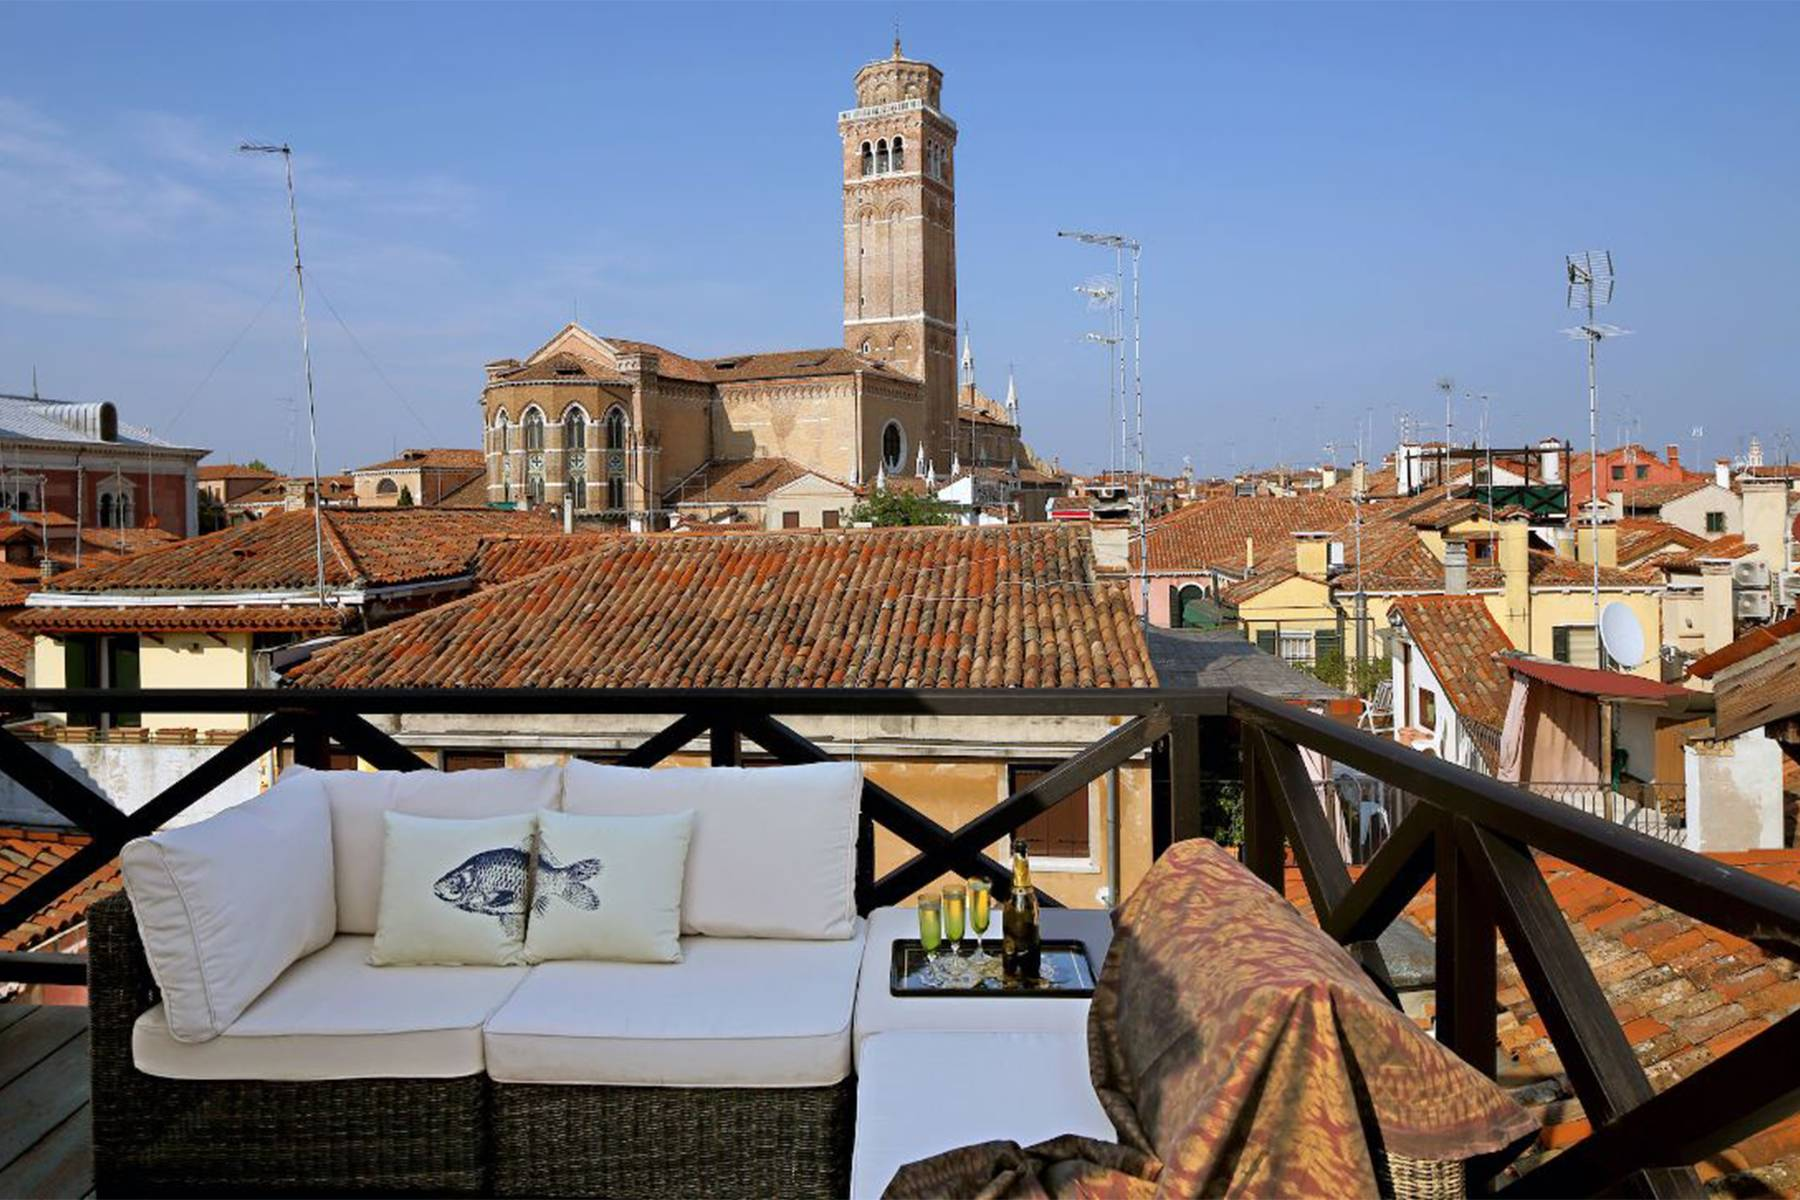 Frari stylish 4 storey house with altana terrace - 5